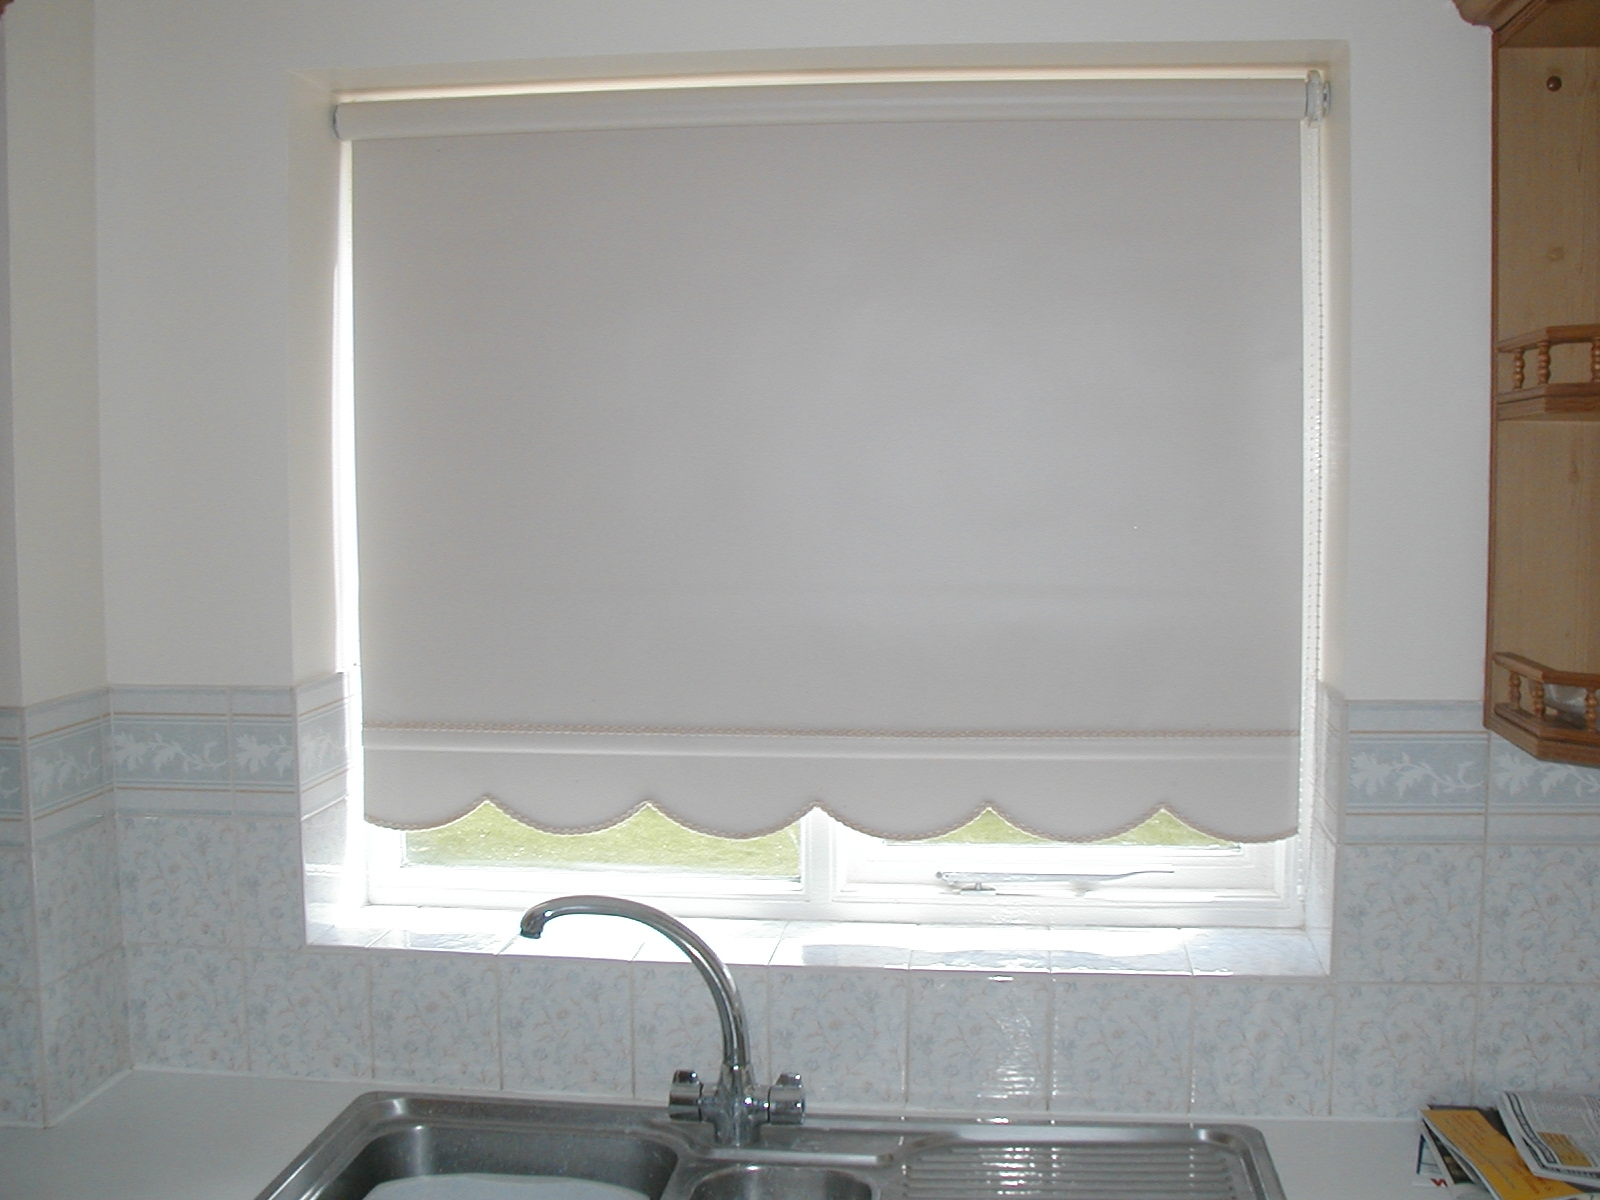 Blind Cleaning Professional And Diy Cleaning Tips Throughout Cloth Roller Blinds (Image 3 of 15)